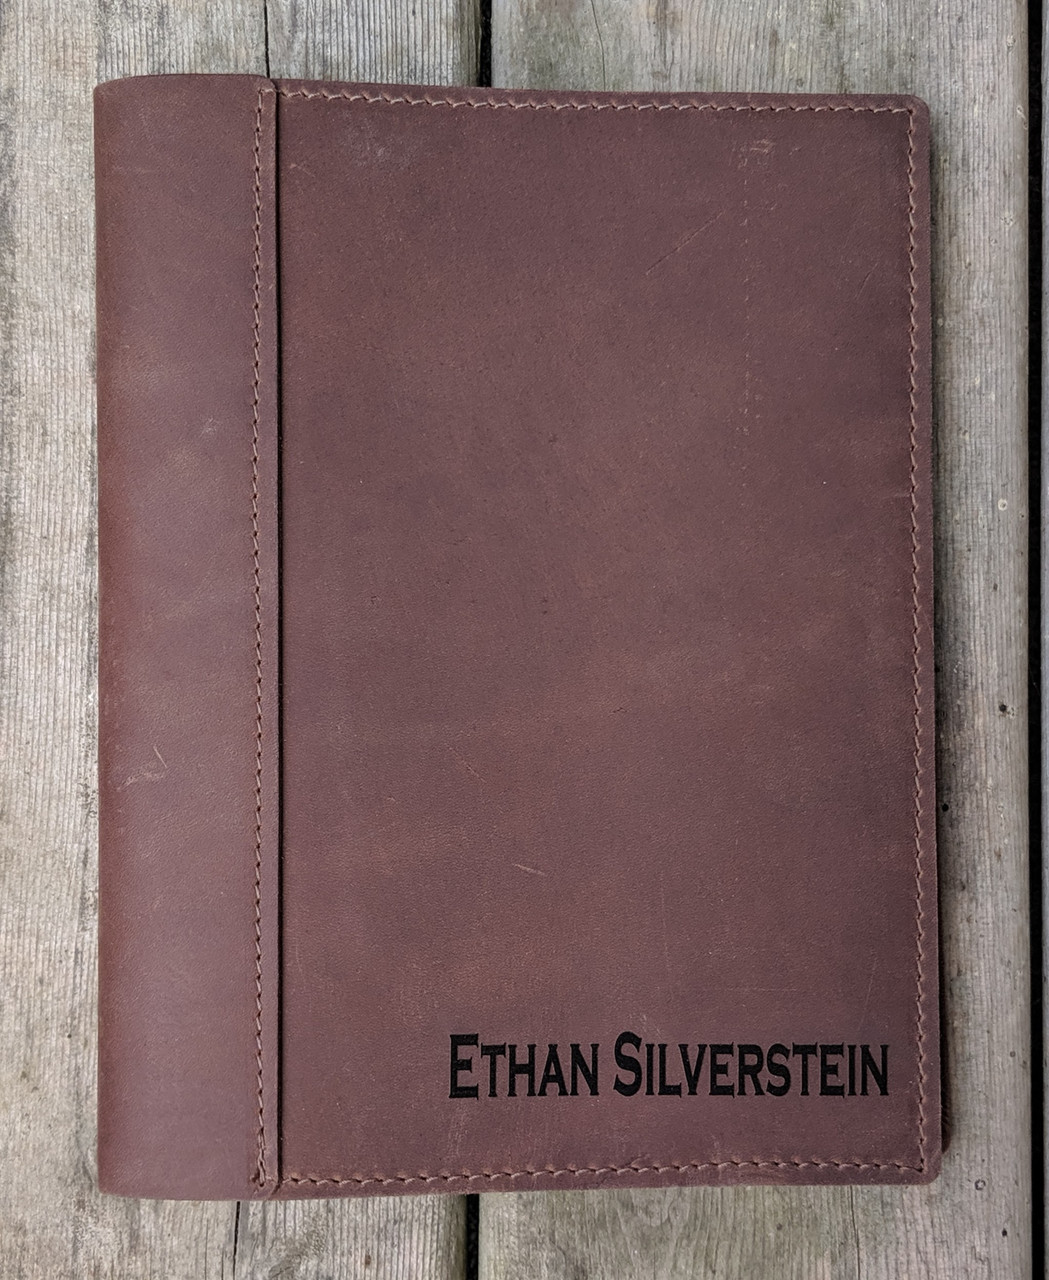 Personalized Name on leather journal